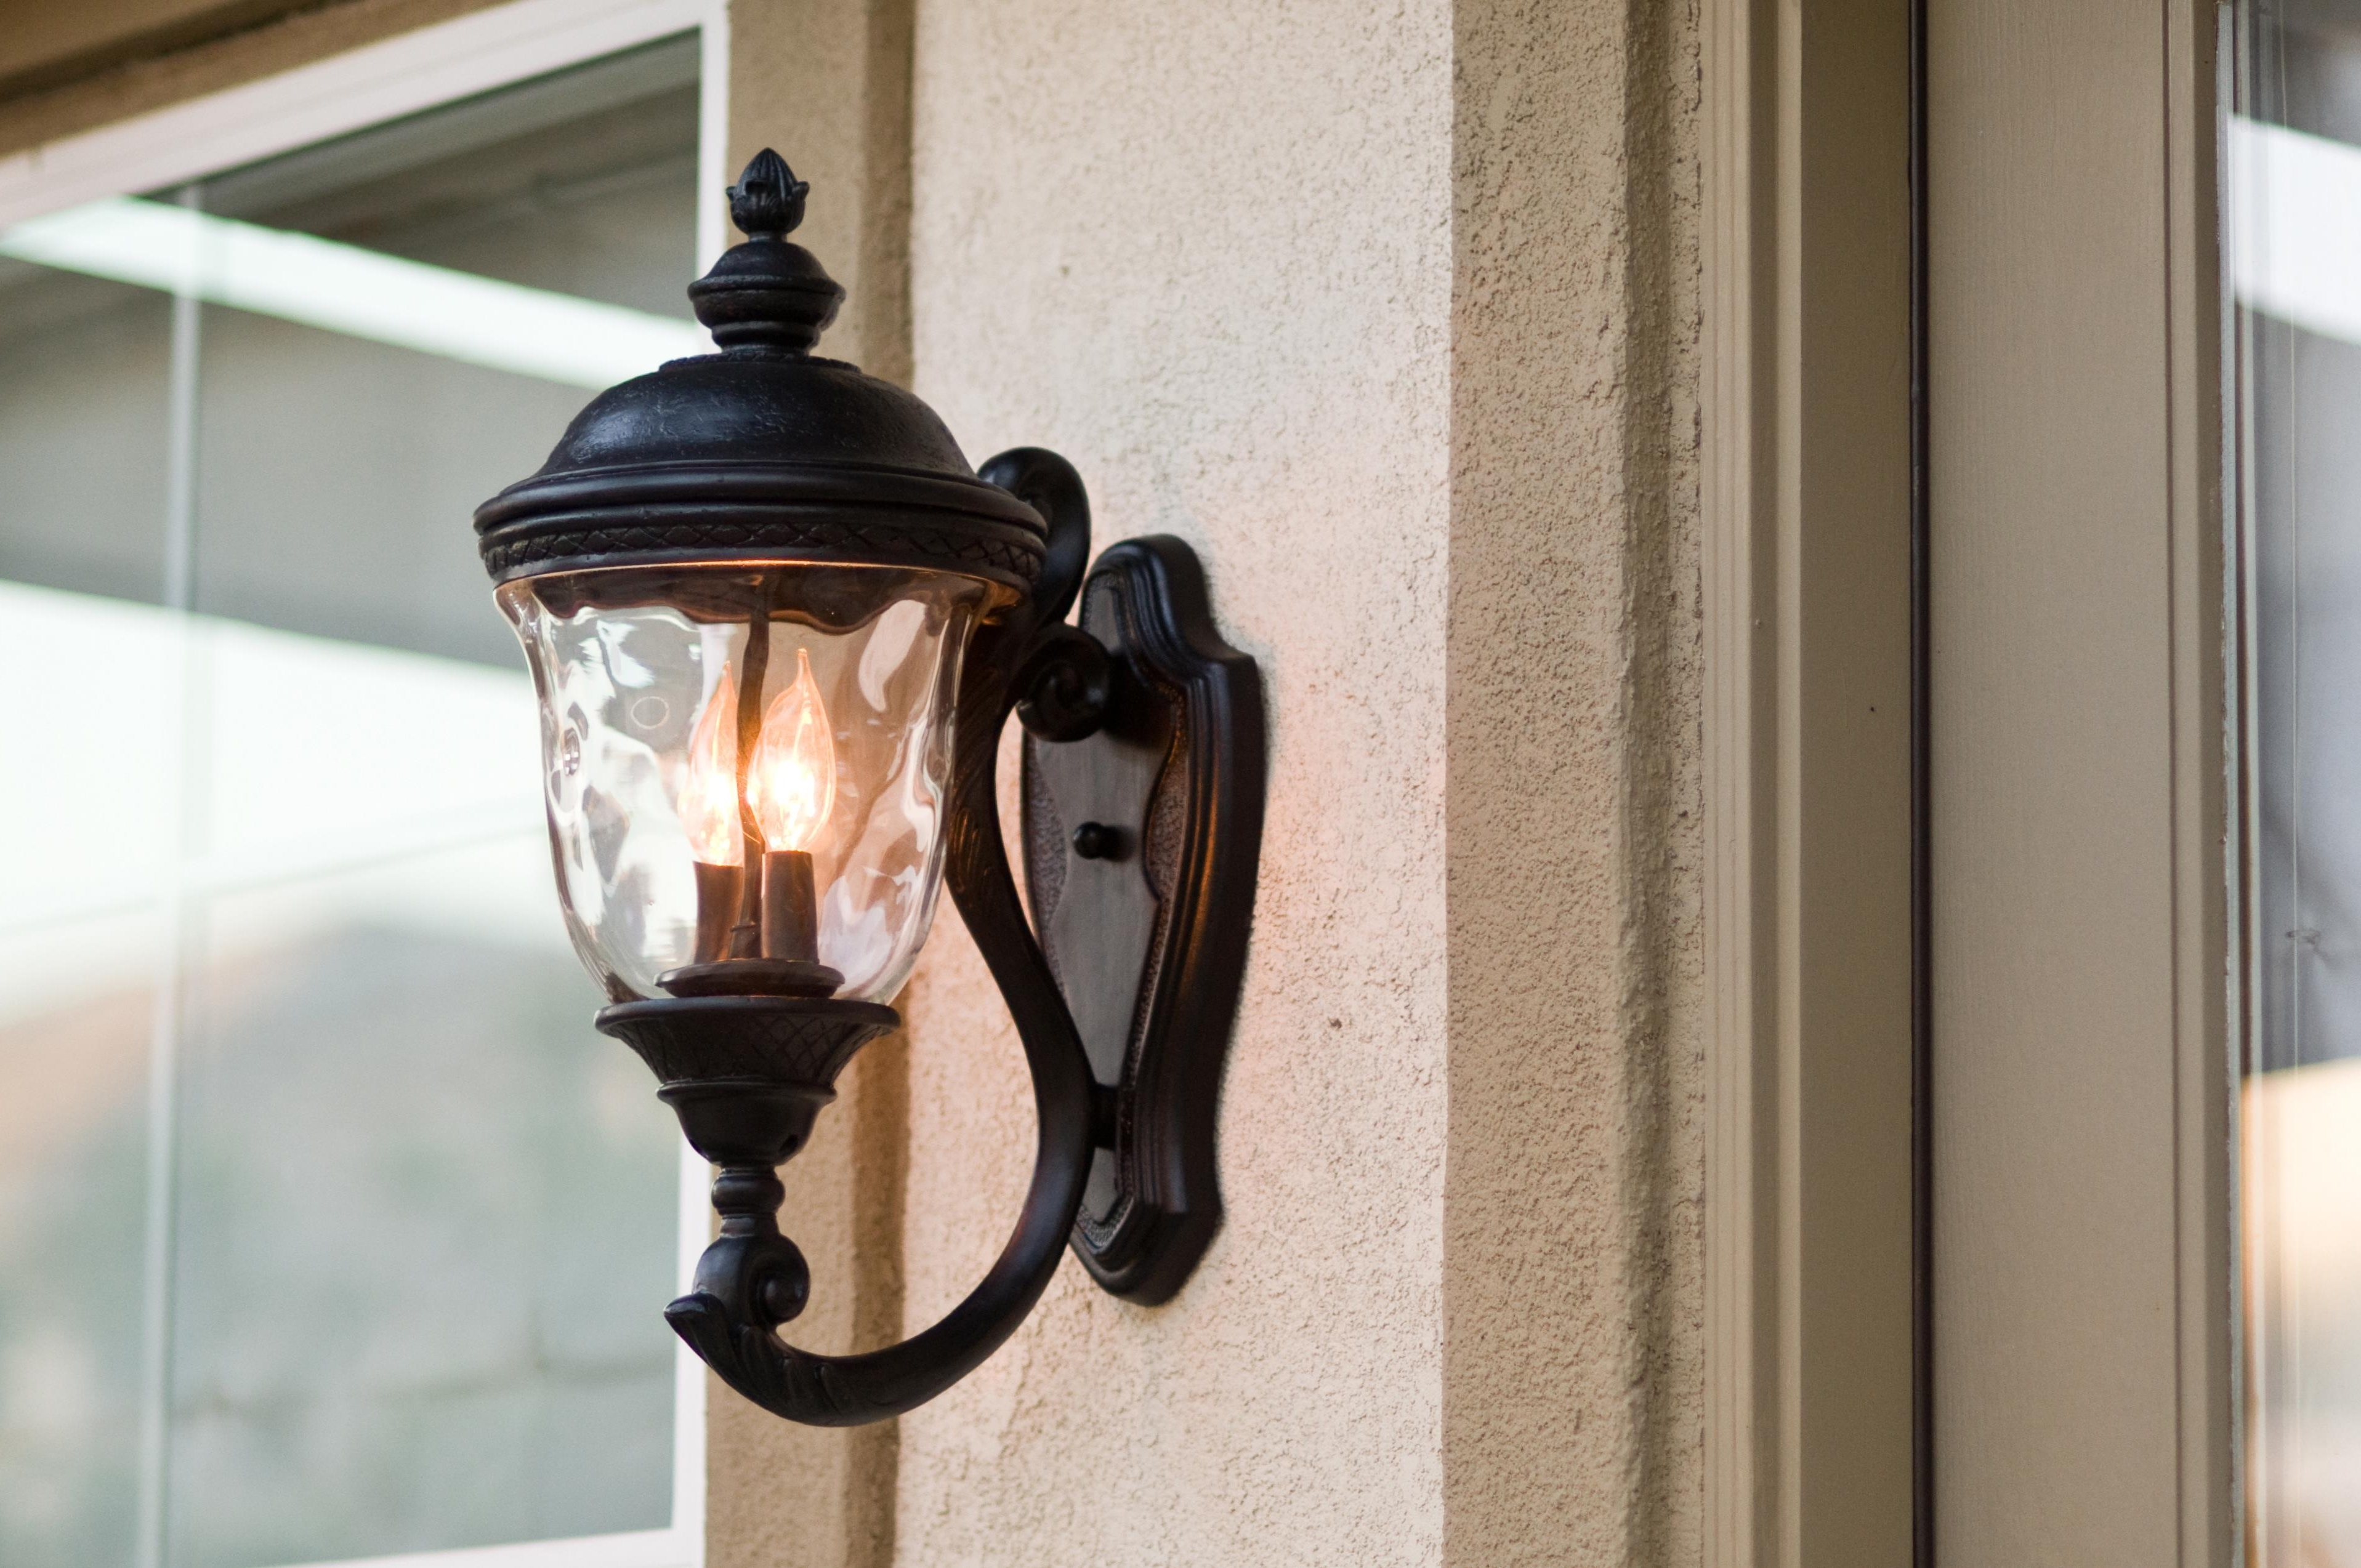 Perfect Simple Modern Lighting Outdoor Mount Wall Fixture With In Well Known Outdoor Wall Mounted Decorative Lighting (View 18 of 20)